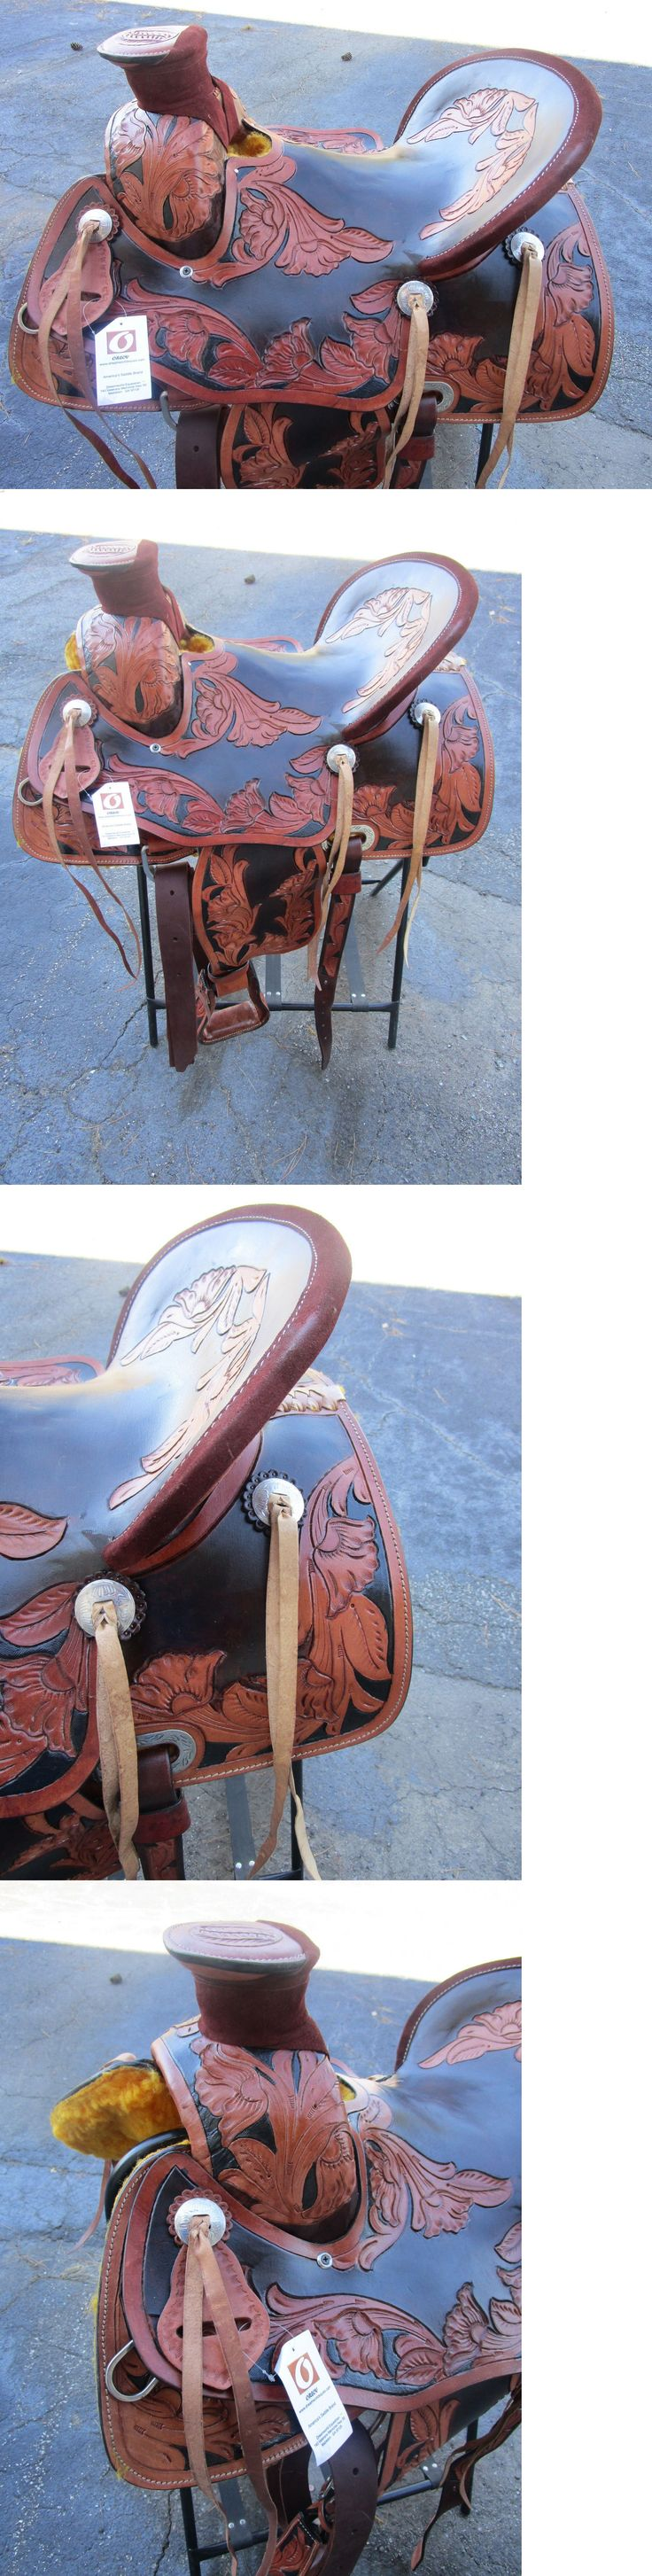 Saddles 47291: 16 Roping Ranch Wade Show Floral Tooled Dark Brown Leather Western Horse Saddle BUY IT NOW ONLY: $386.99